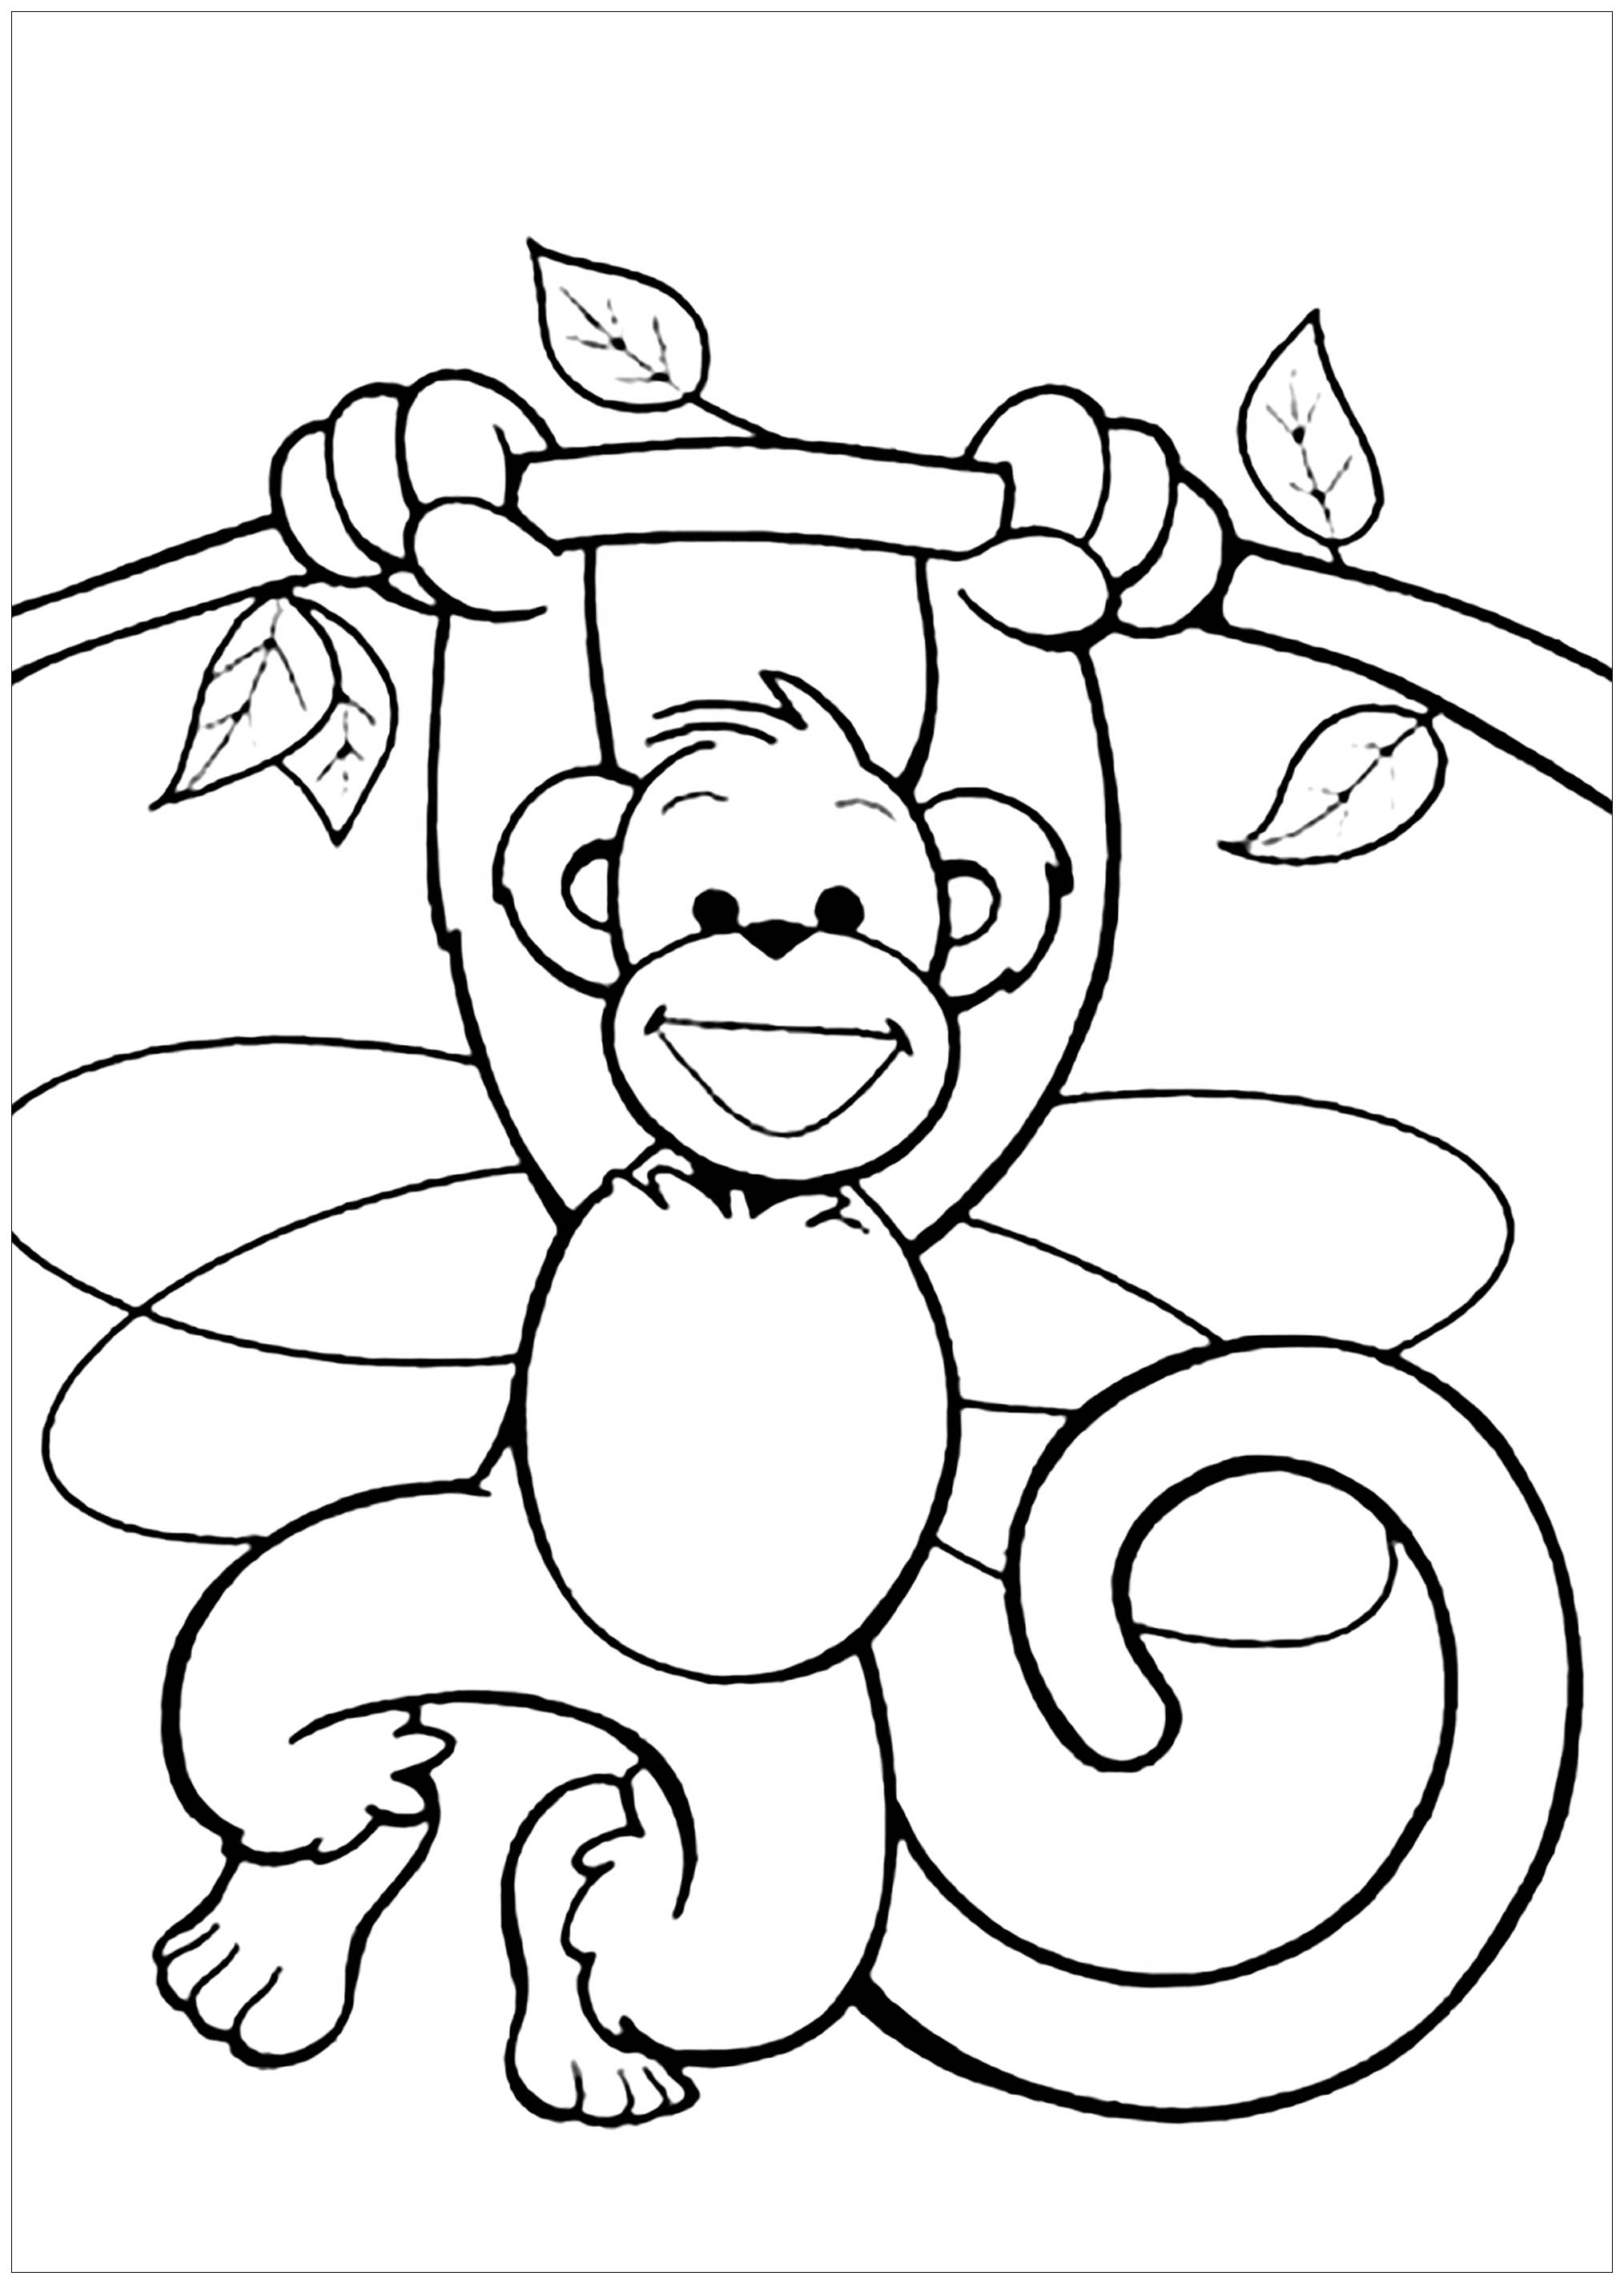 monkey coloring pictures free printable monkey coloring page with images monkey monkey coloring pictures